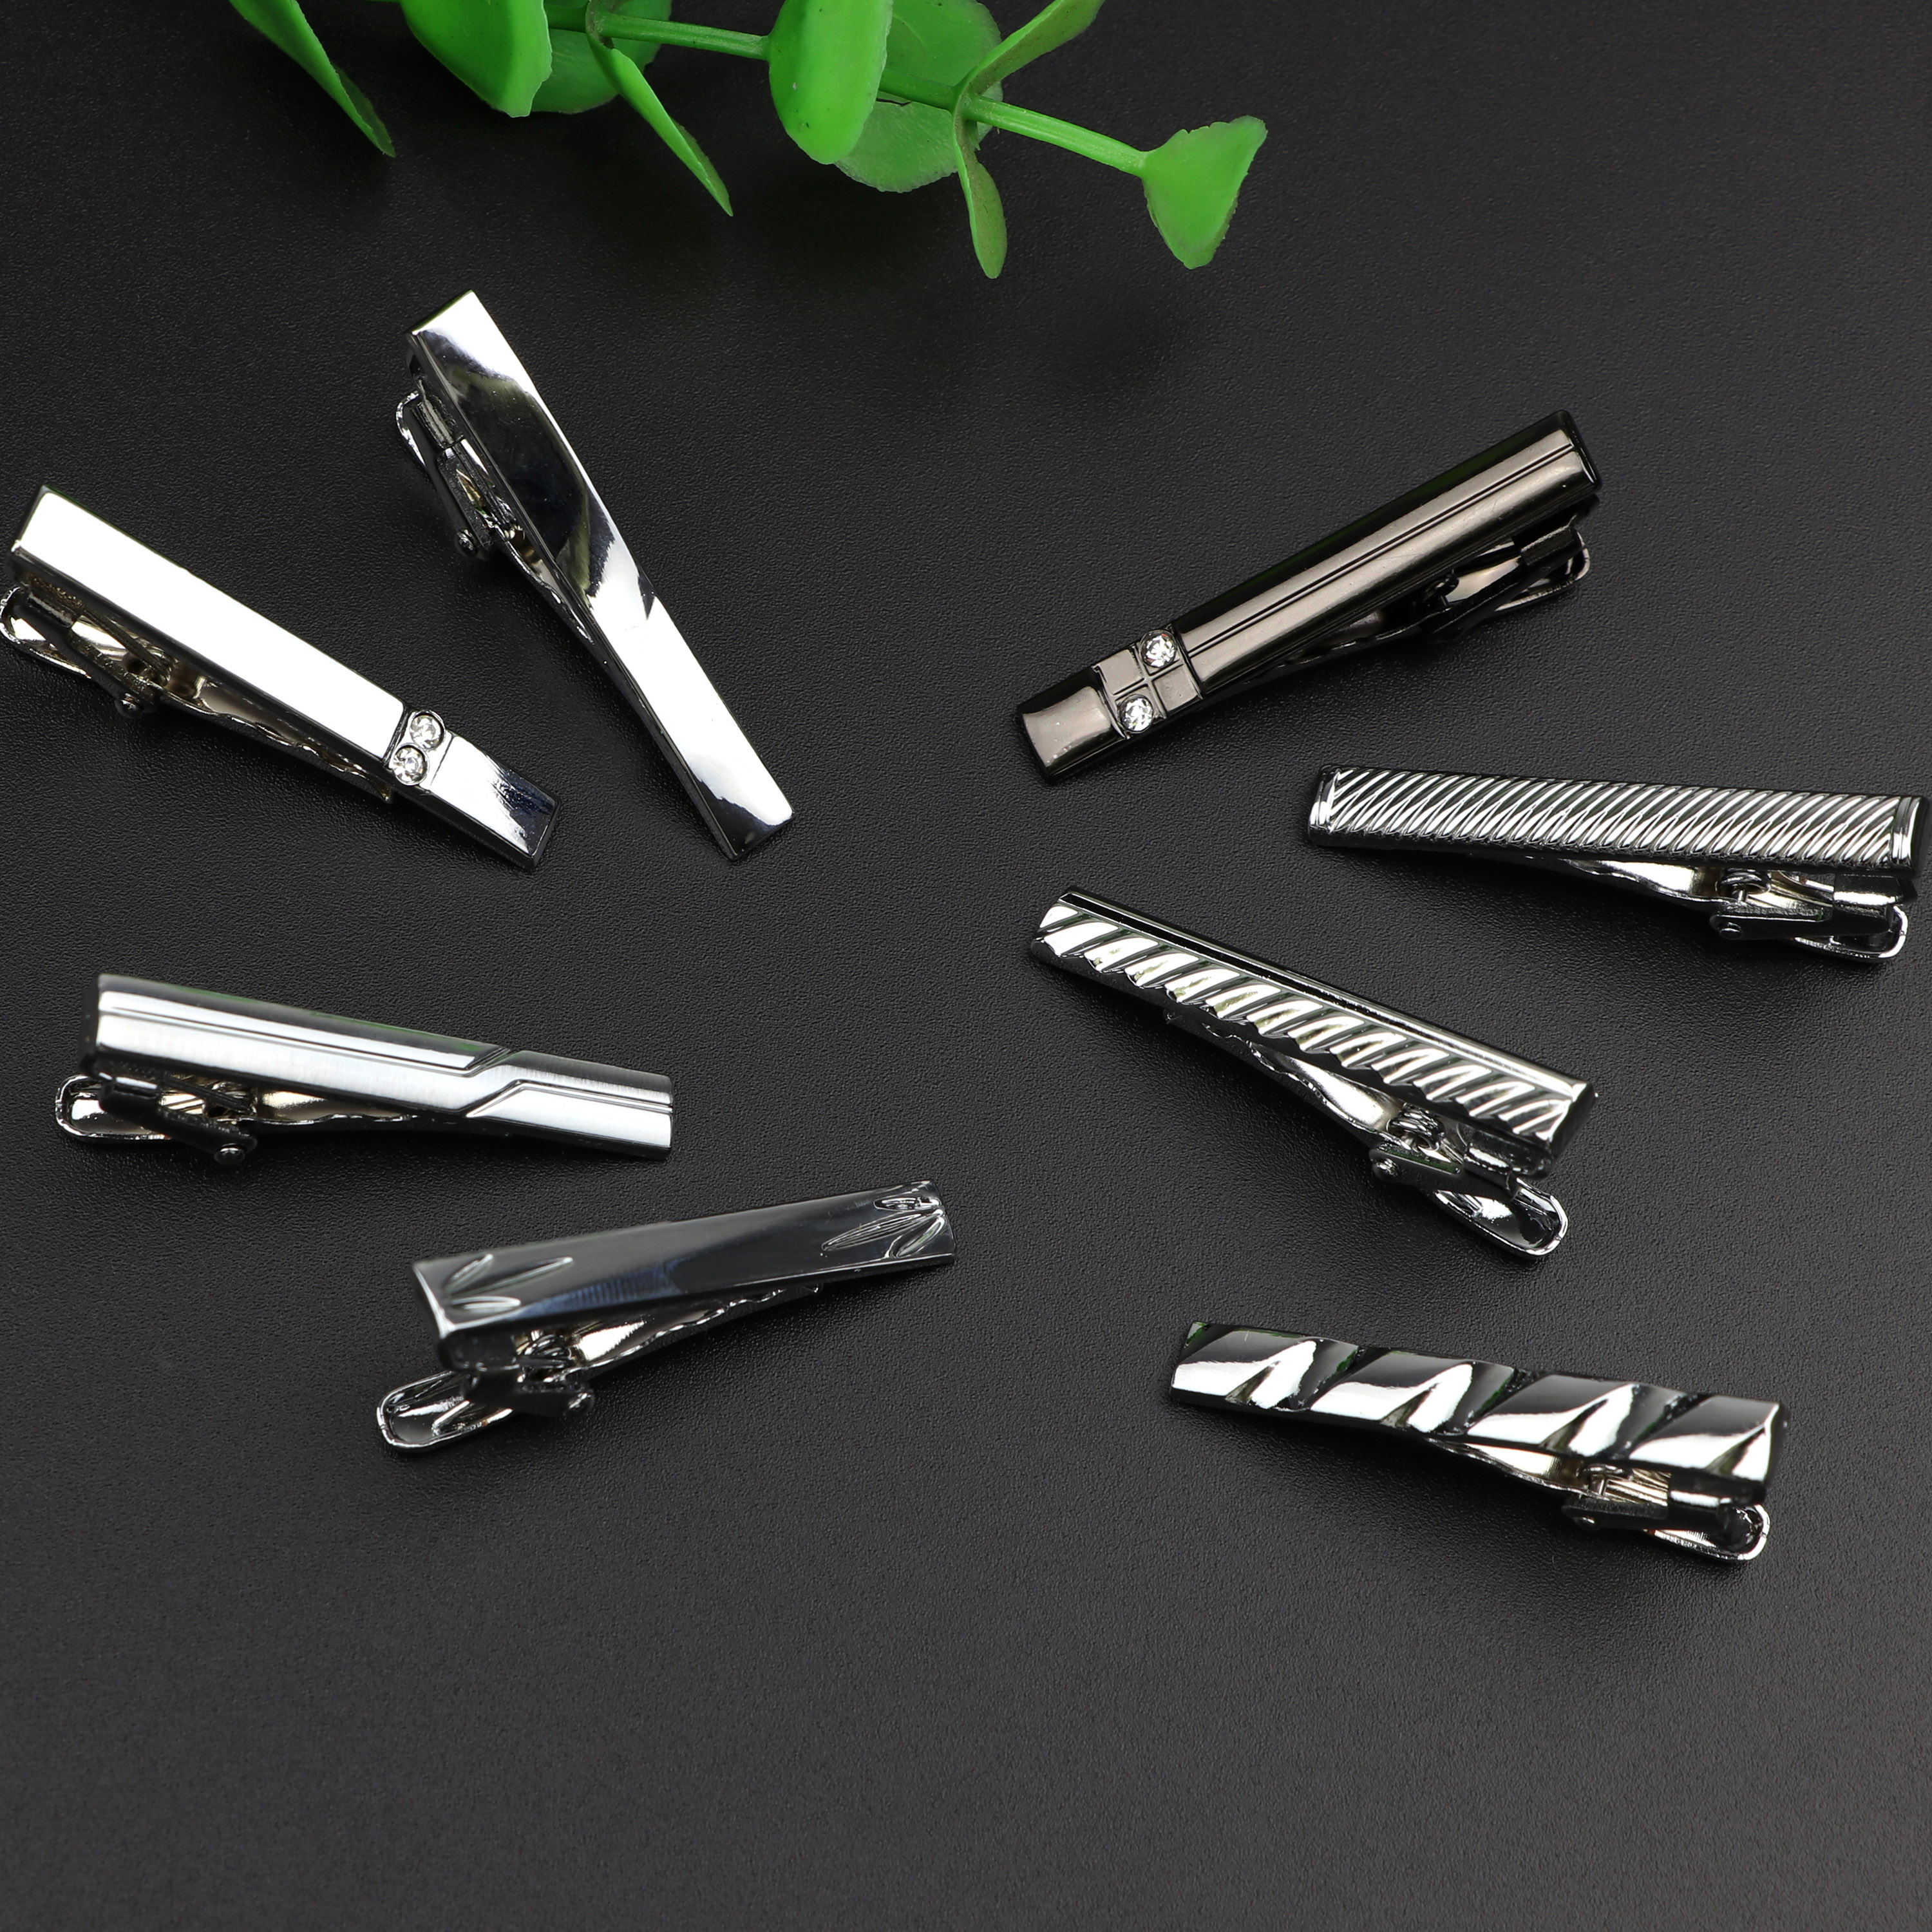 4cm New Simple Fashion Style Tie Clip Metal Silver Exquisite Practical Clips Pin Clasp Business Wedding Accessories Gift For Men